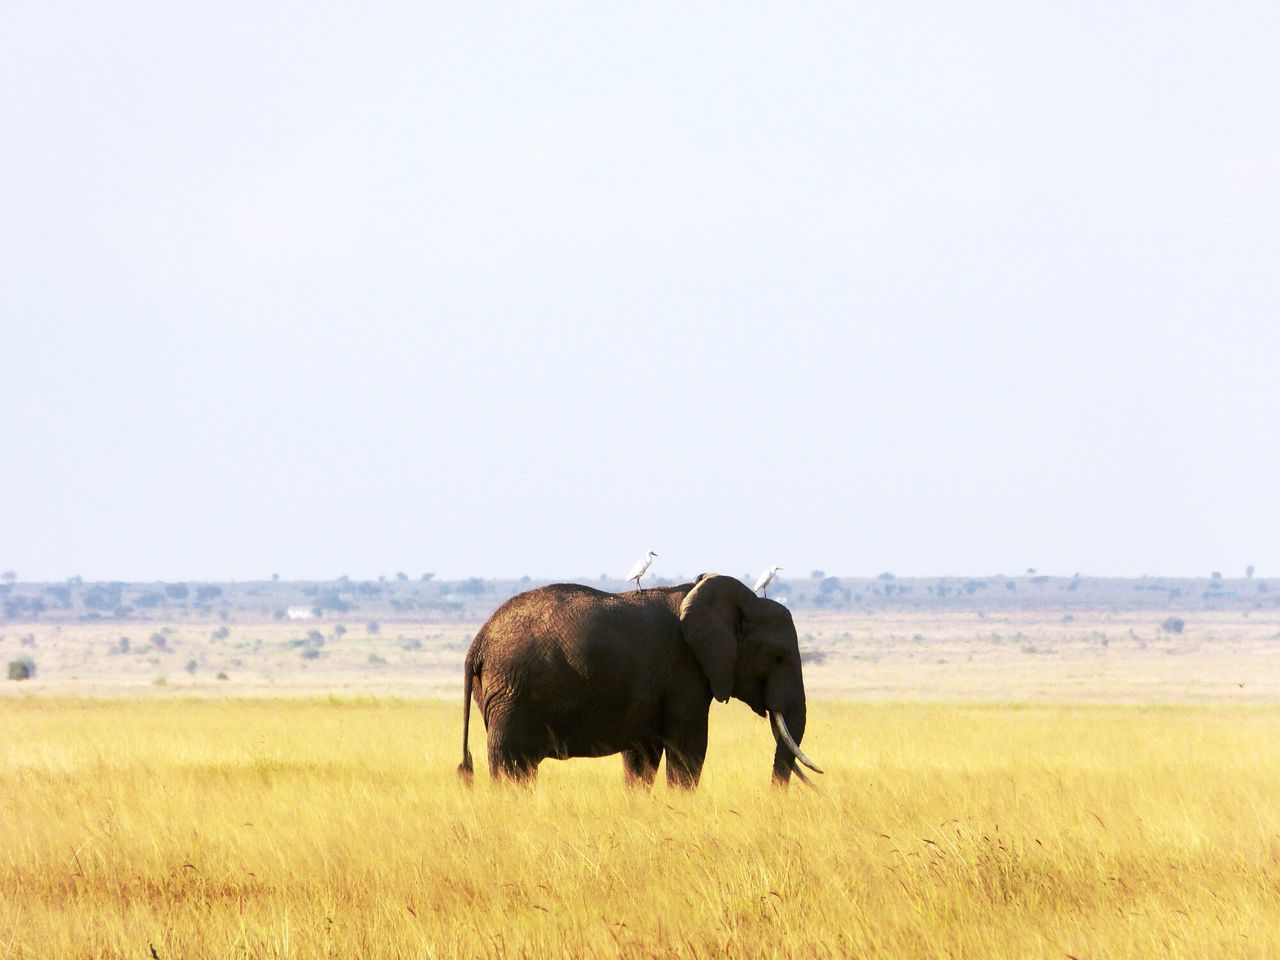 Beautiful stock photos of elephant, African Elephant, Animal Themes, Animals In Captivity, Beauty In Nature